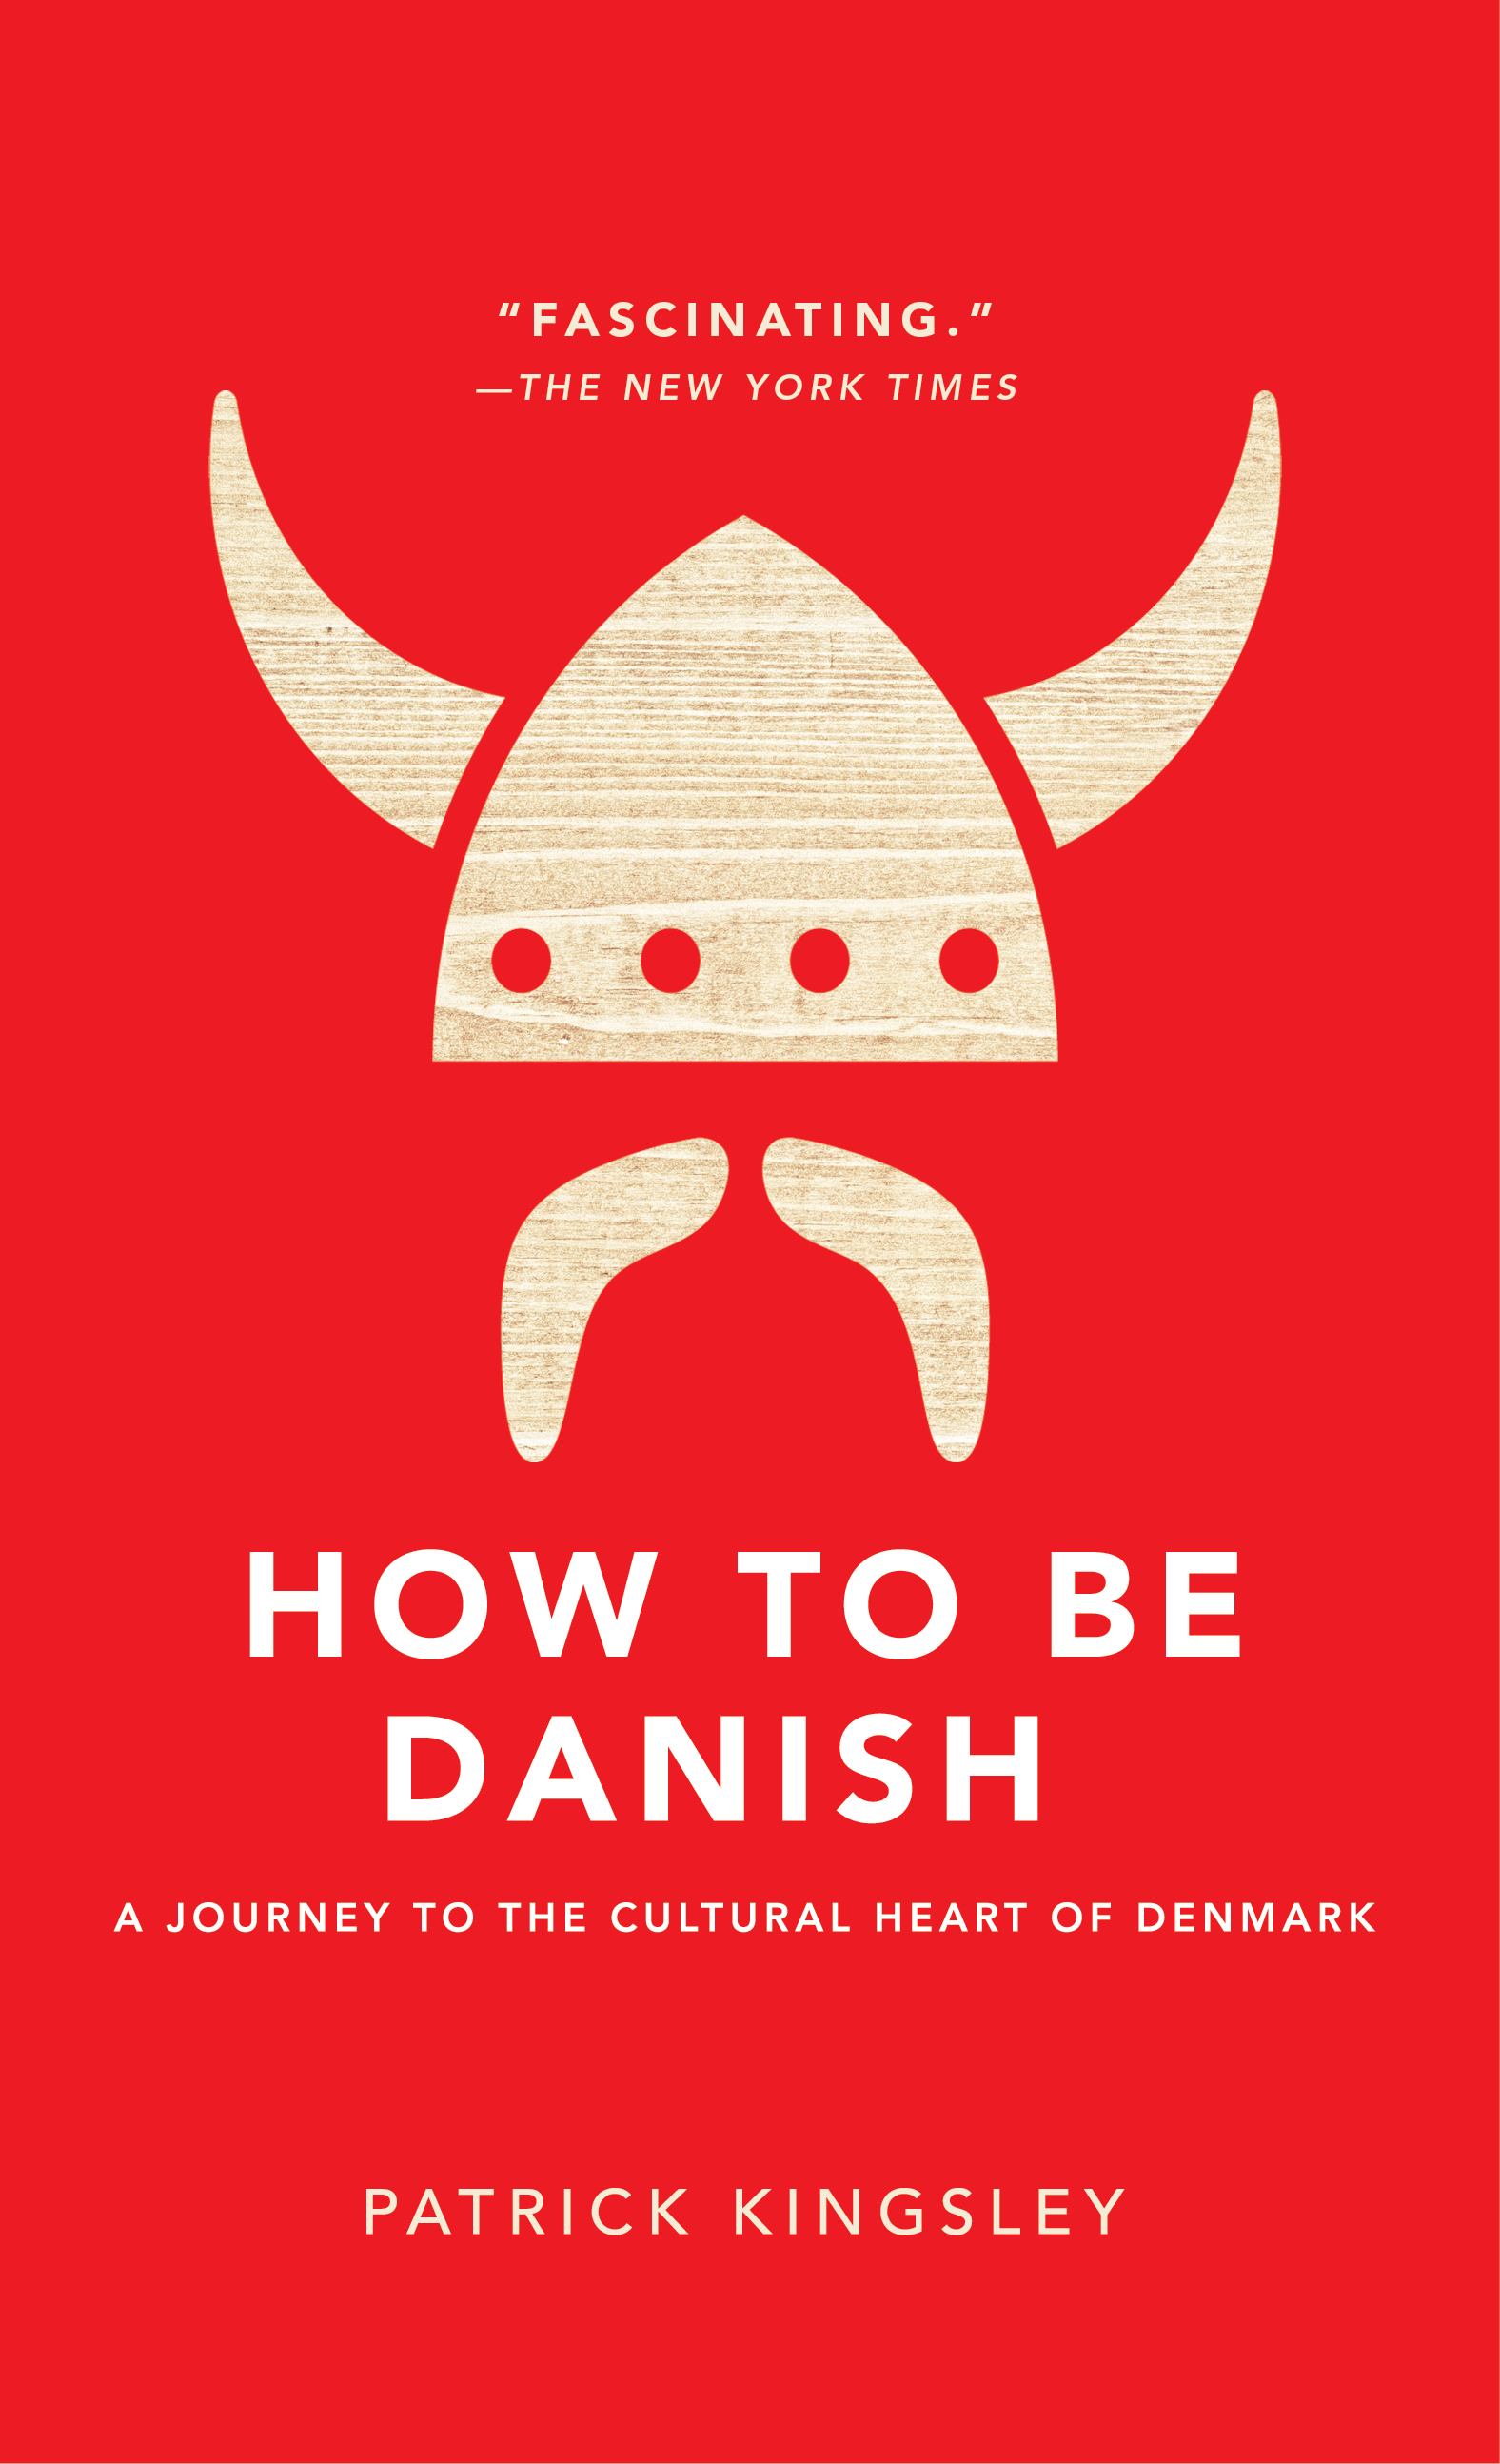 Very funny read and also highly recommended book to read when interested into Denmark and its way of living.